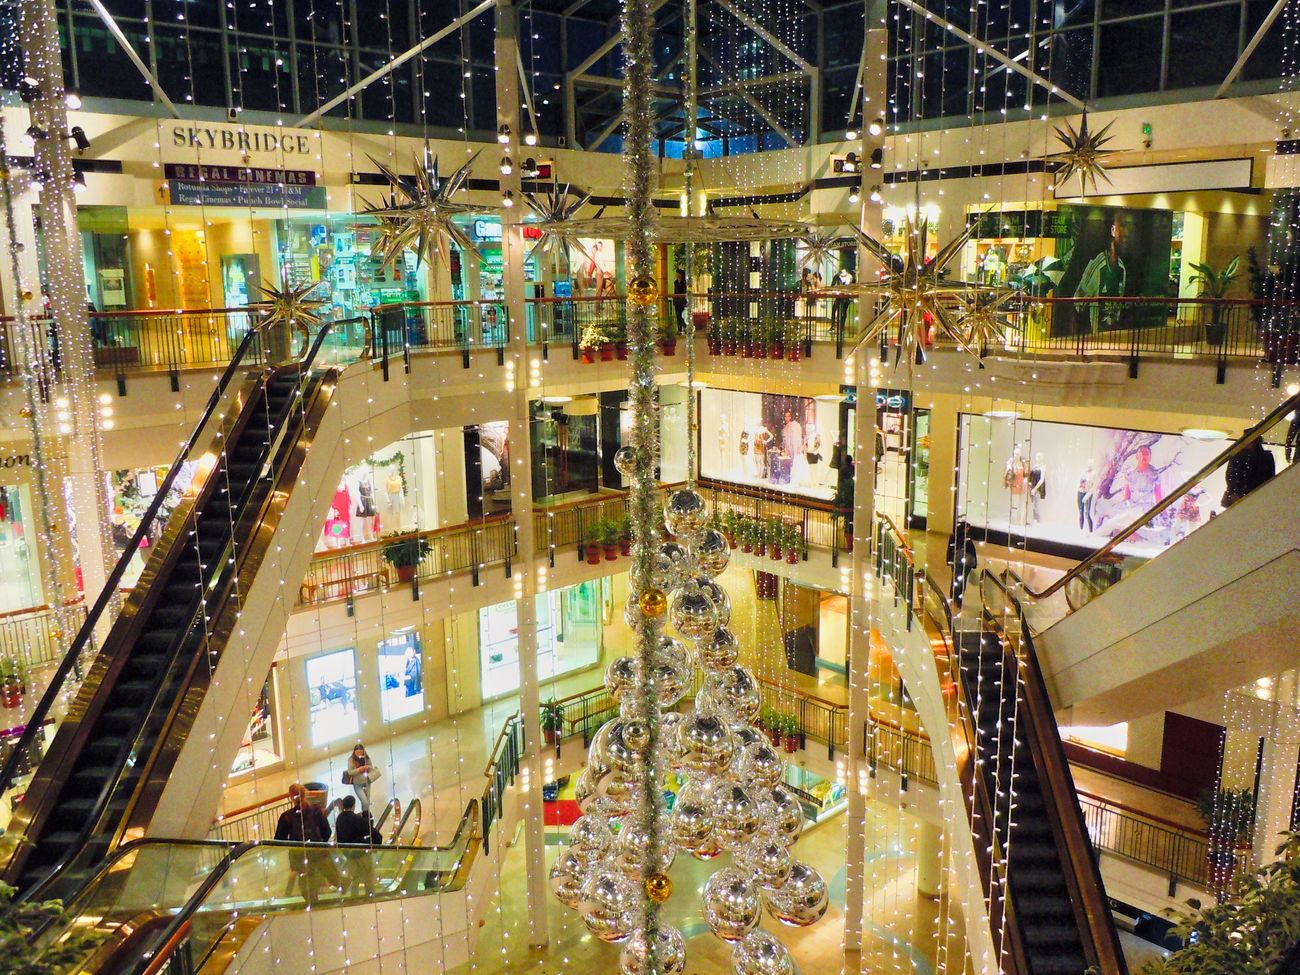 Built Structure Architecture Real People City Large Group Of People Building Exterior Women Illuminated Crowd Indoors  Day People Dezember Department Store Oregon Portland, OR City City Life Tranquility Xmas Xmas Decorations